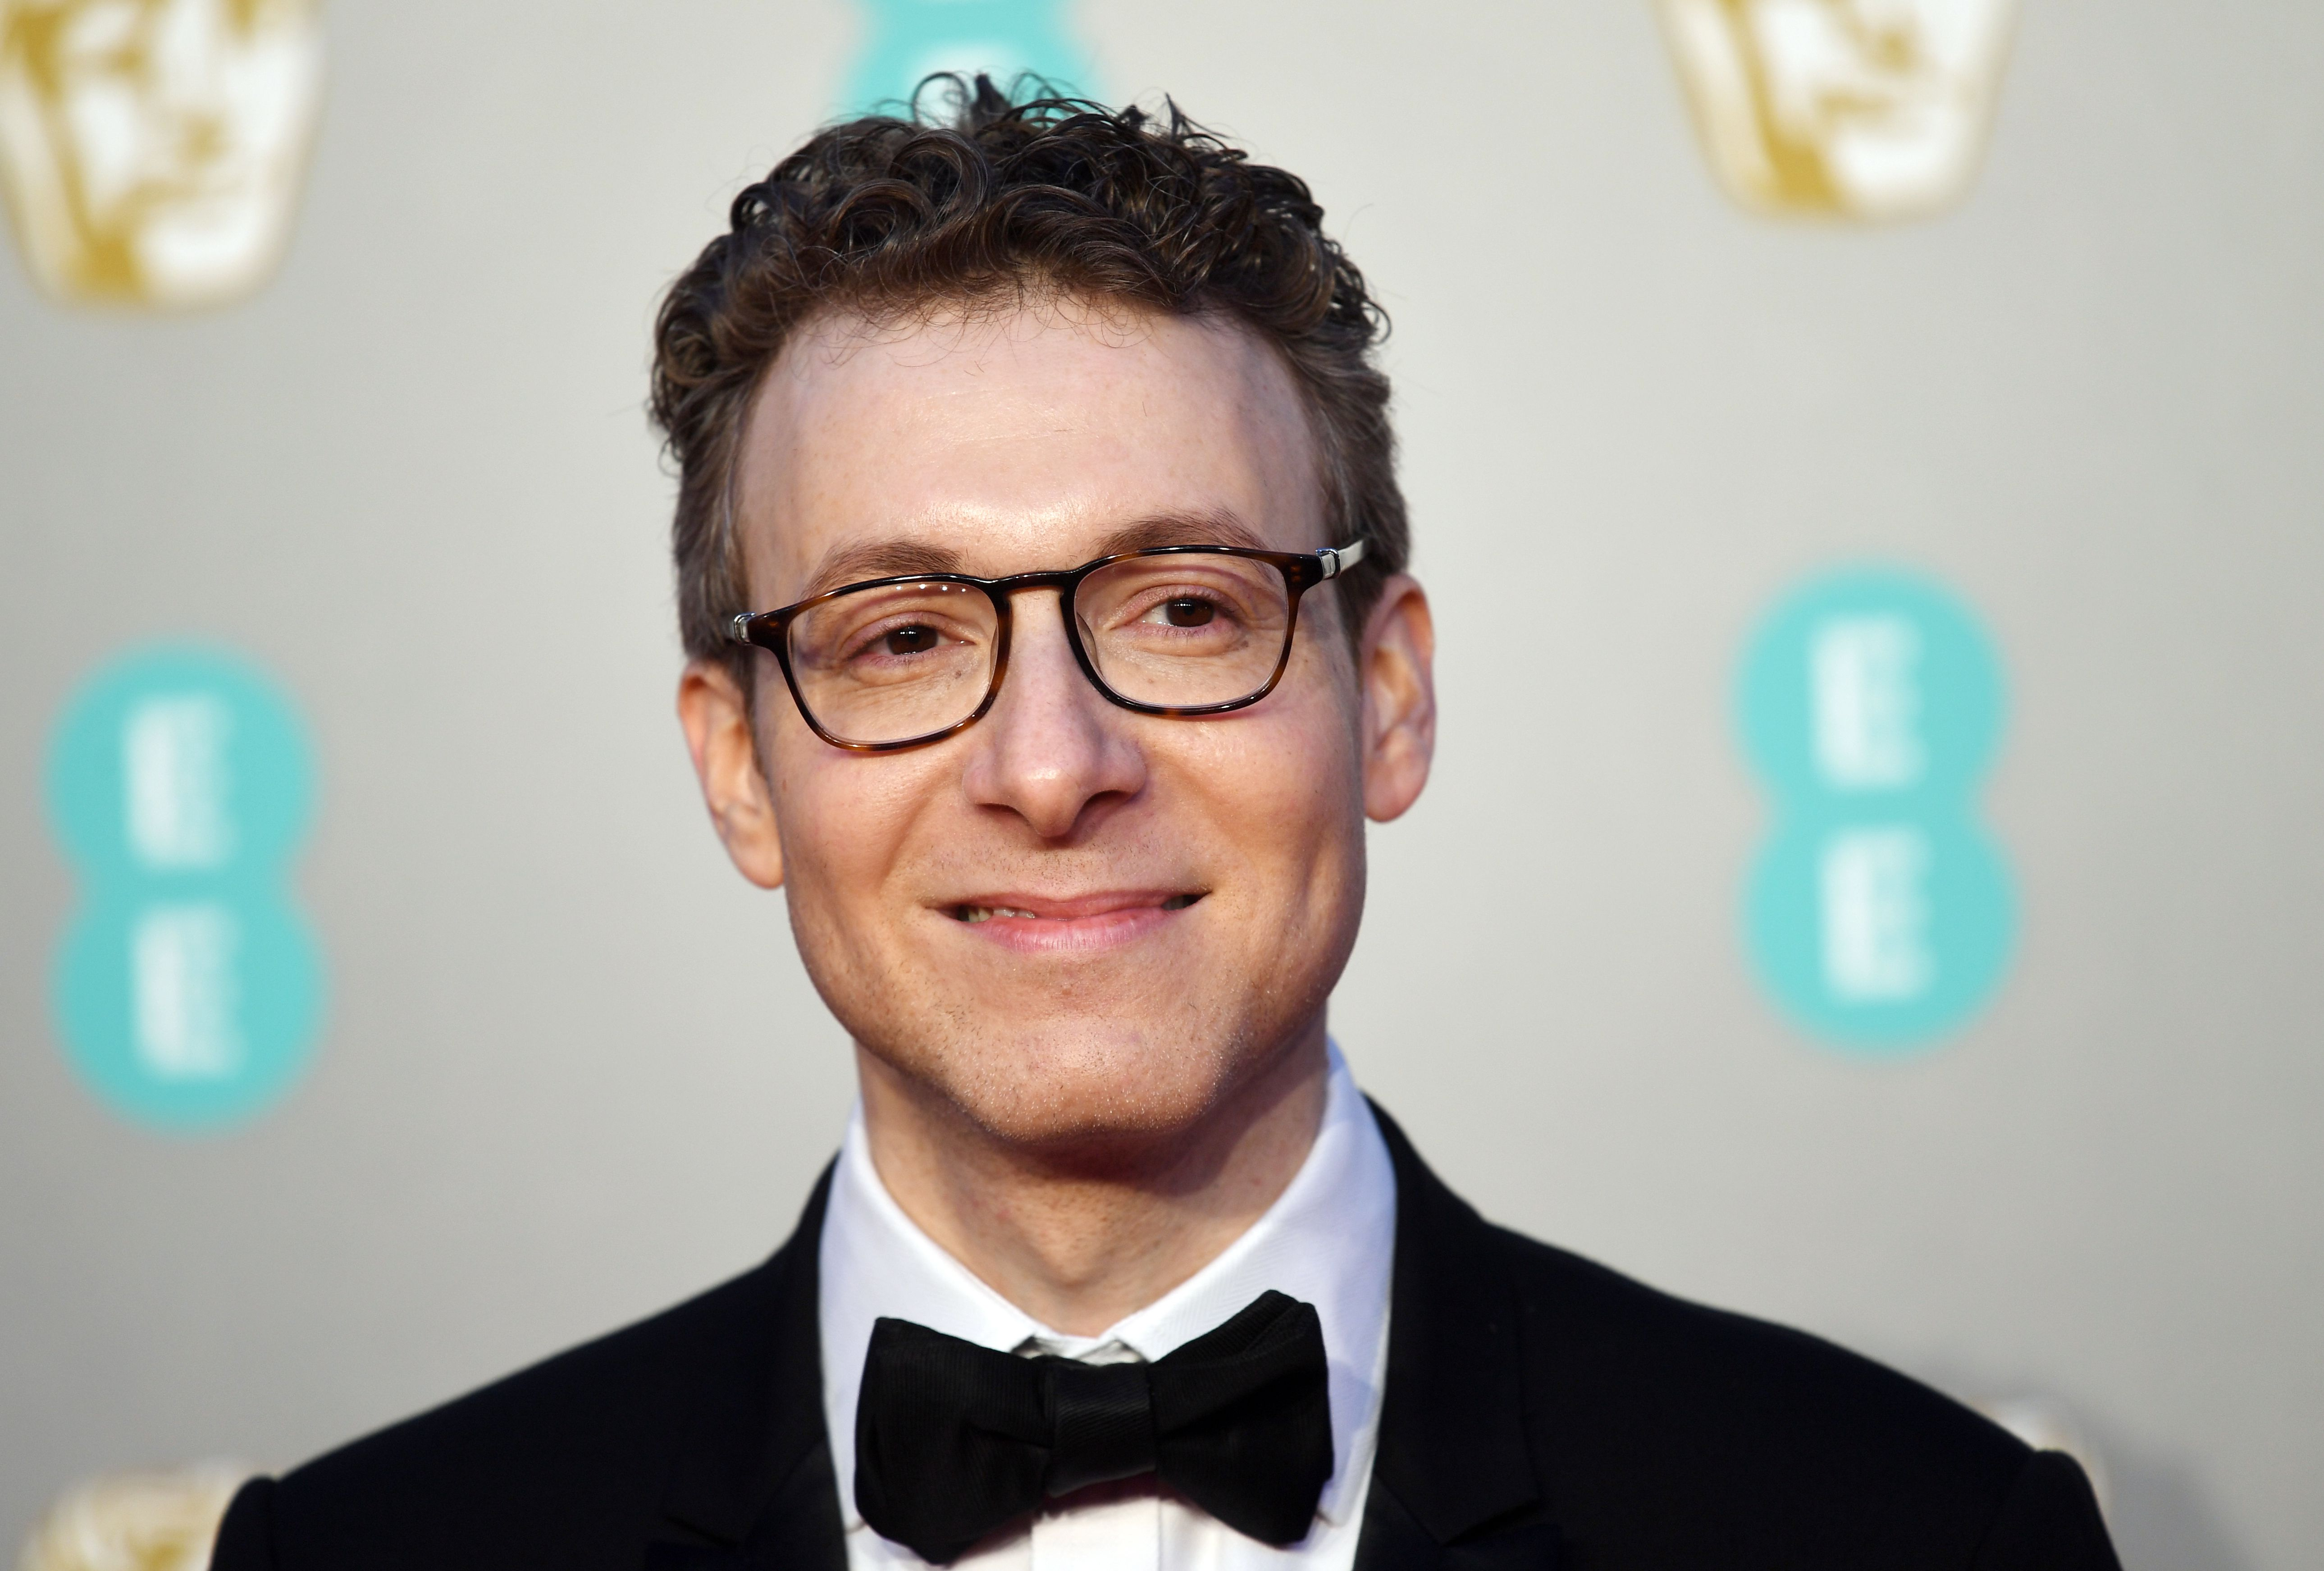 Nicholas Britell attends the 72nd annual British Academy Film Awards at the Royal Albert Hall in London, Britain, 10 February 2019. The ceremony is hosted by the British Academy of Film and Television Arts (BAFTA).Arrivals - 2019 EE British Academy Film Awards, London, United Kingdom - 10 Feb 2019